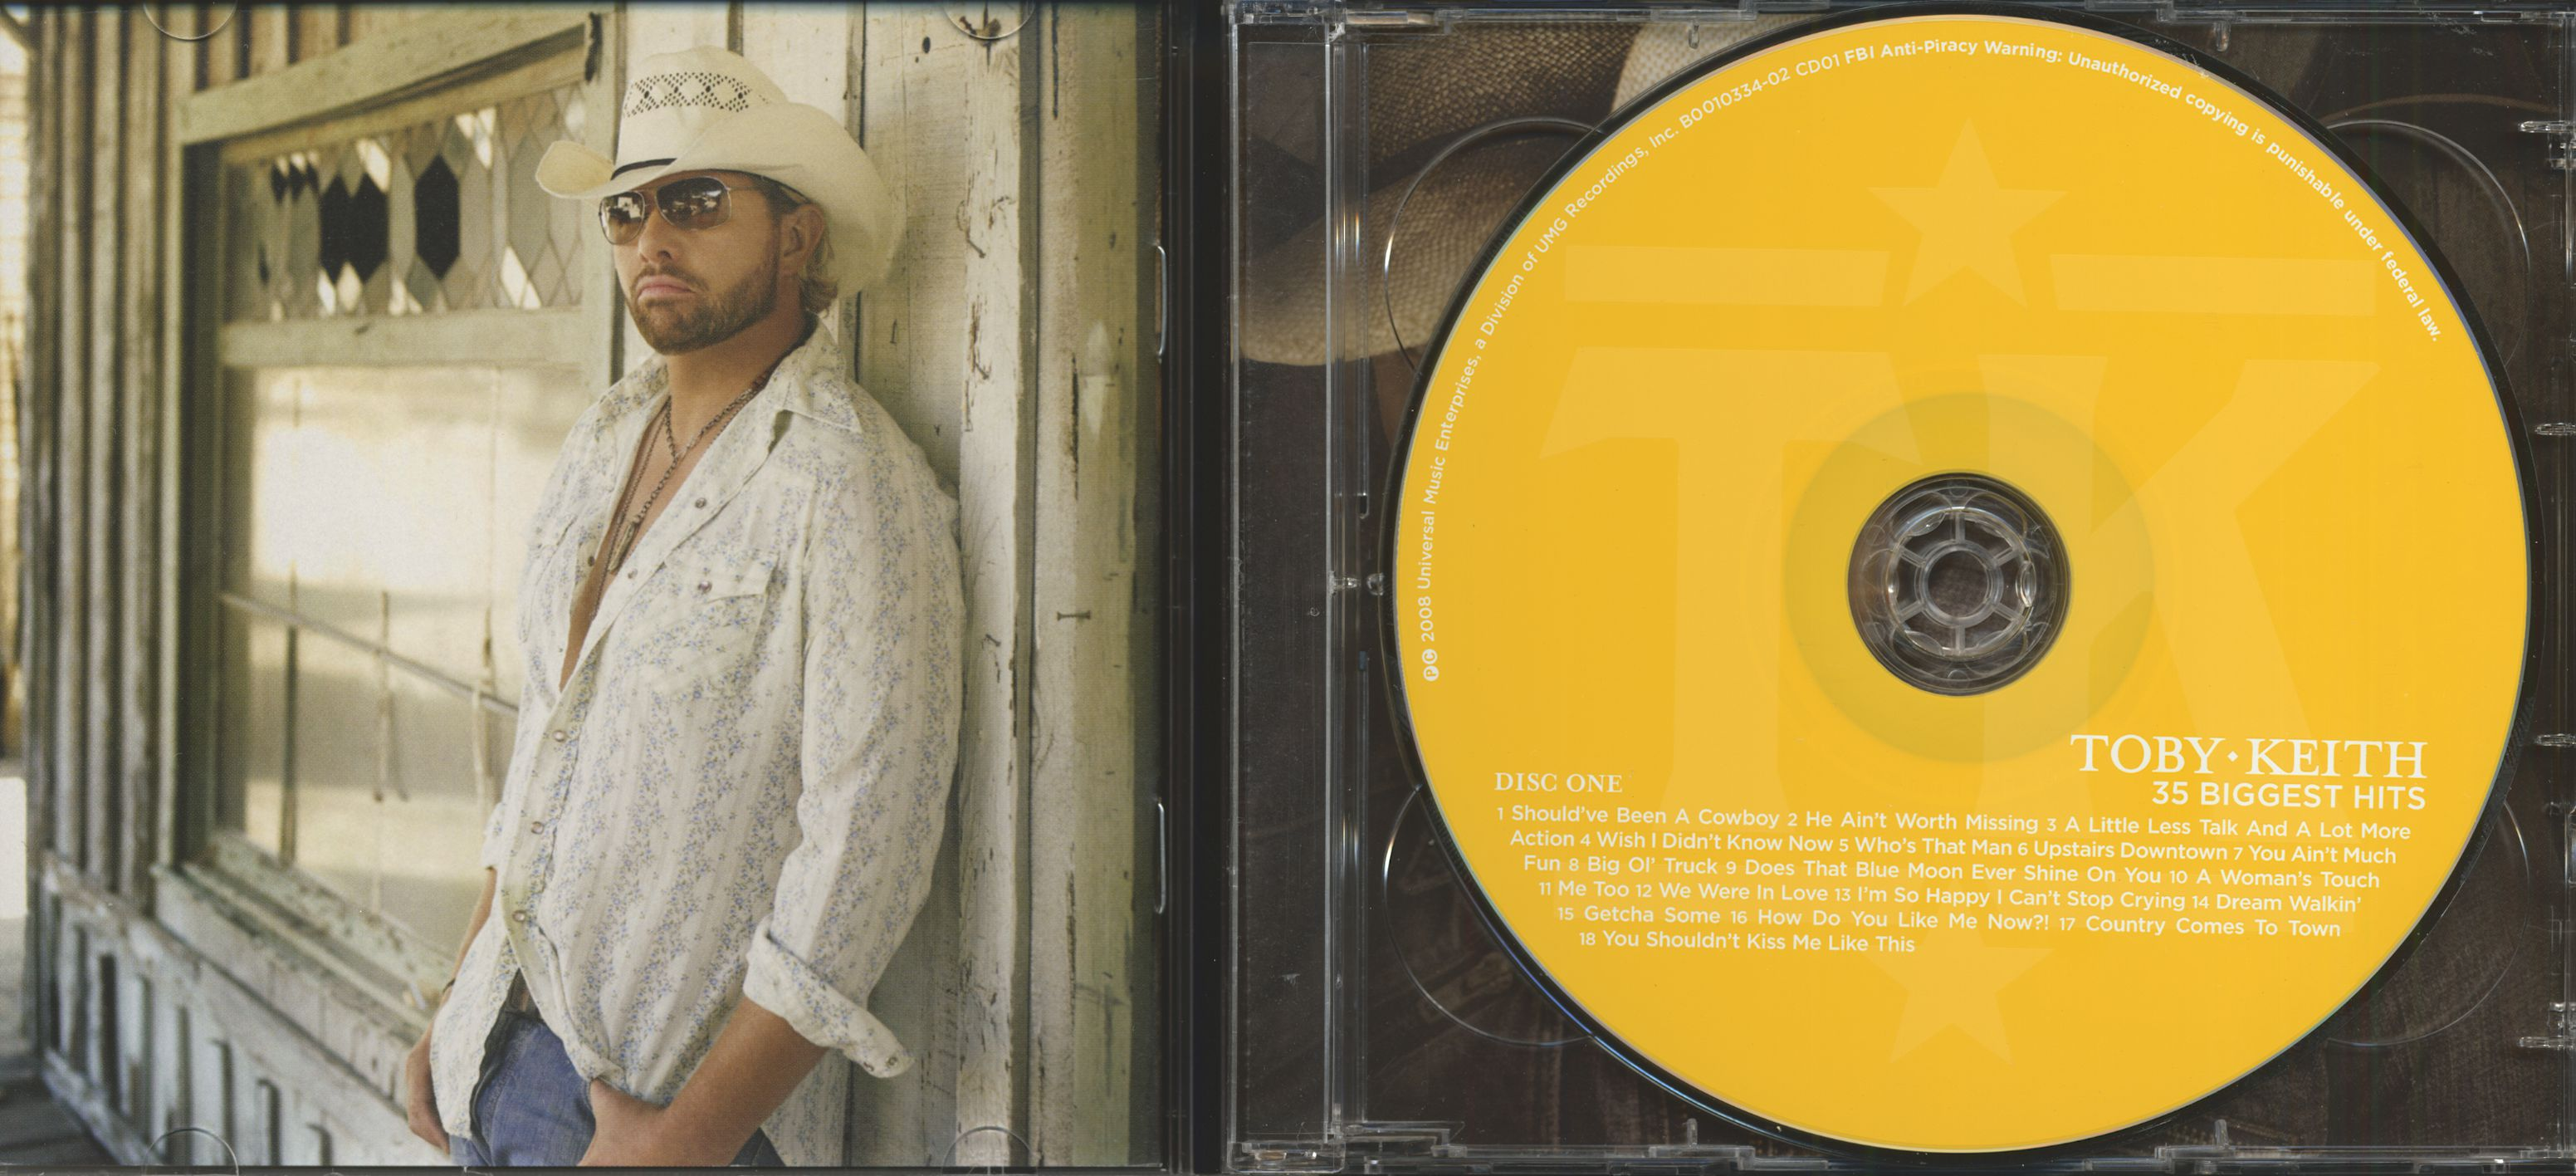 toby keith cd 35 biggest hits 2 cd bear family records